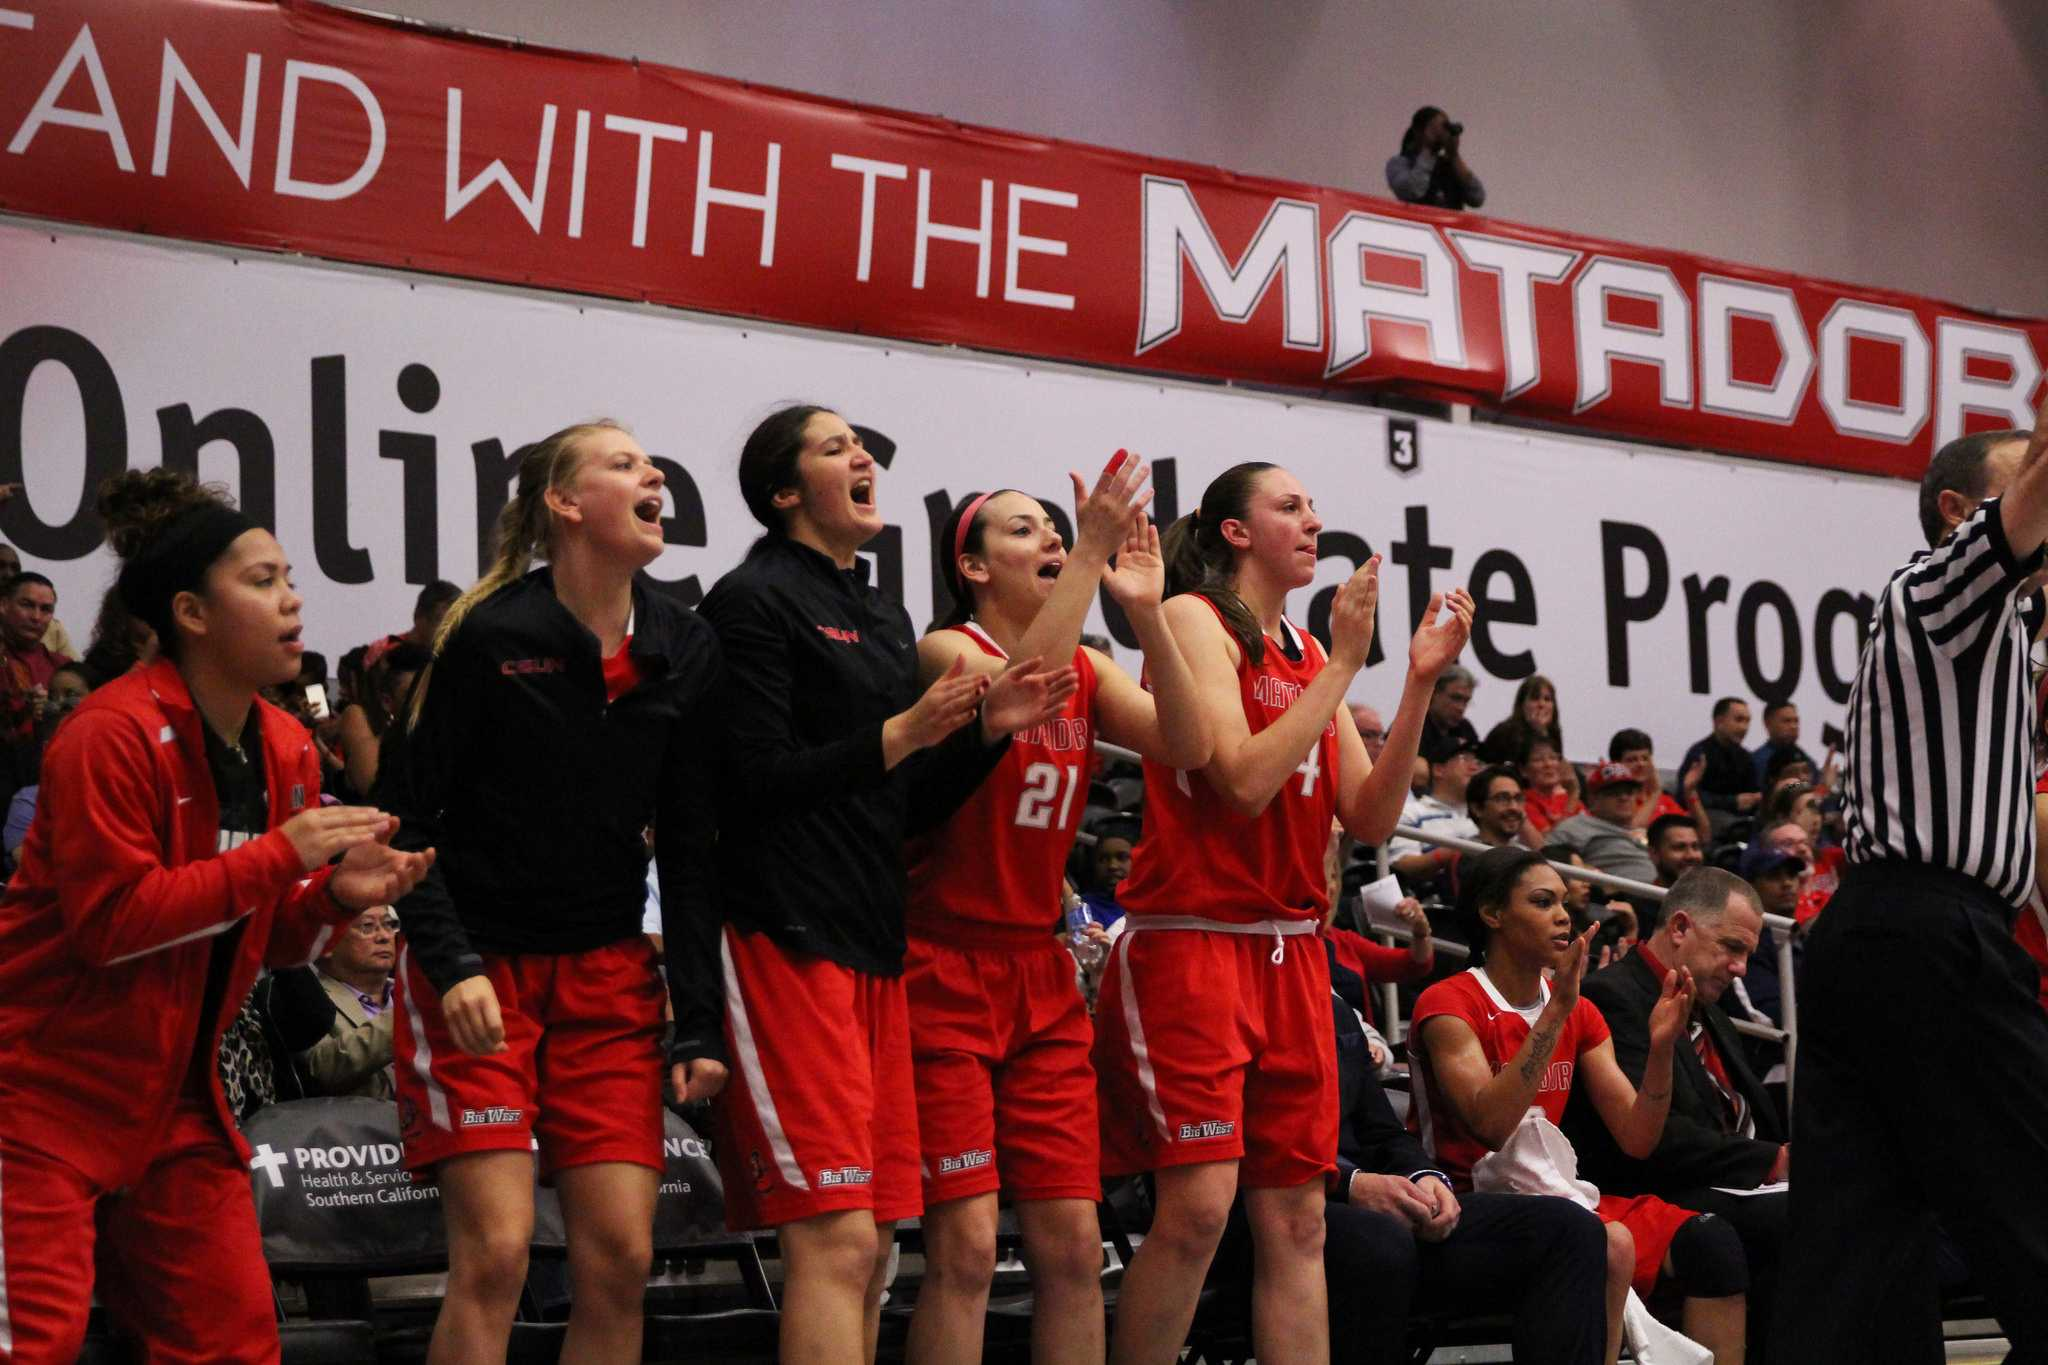 CSUN+women%27s+basketball+welcomes+two+new+players+to+their+team+for+the+new+2015-2016+season.